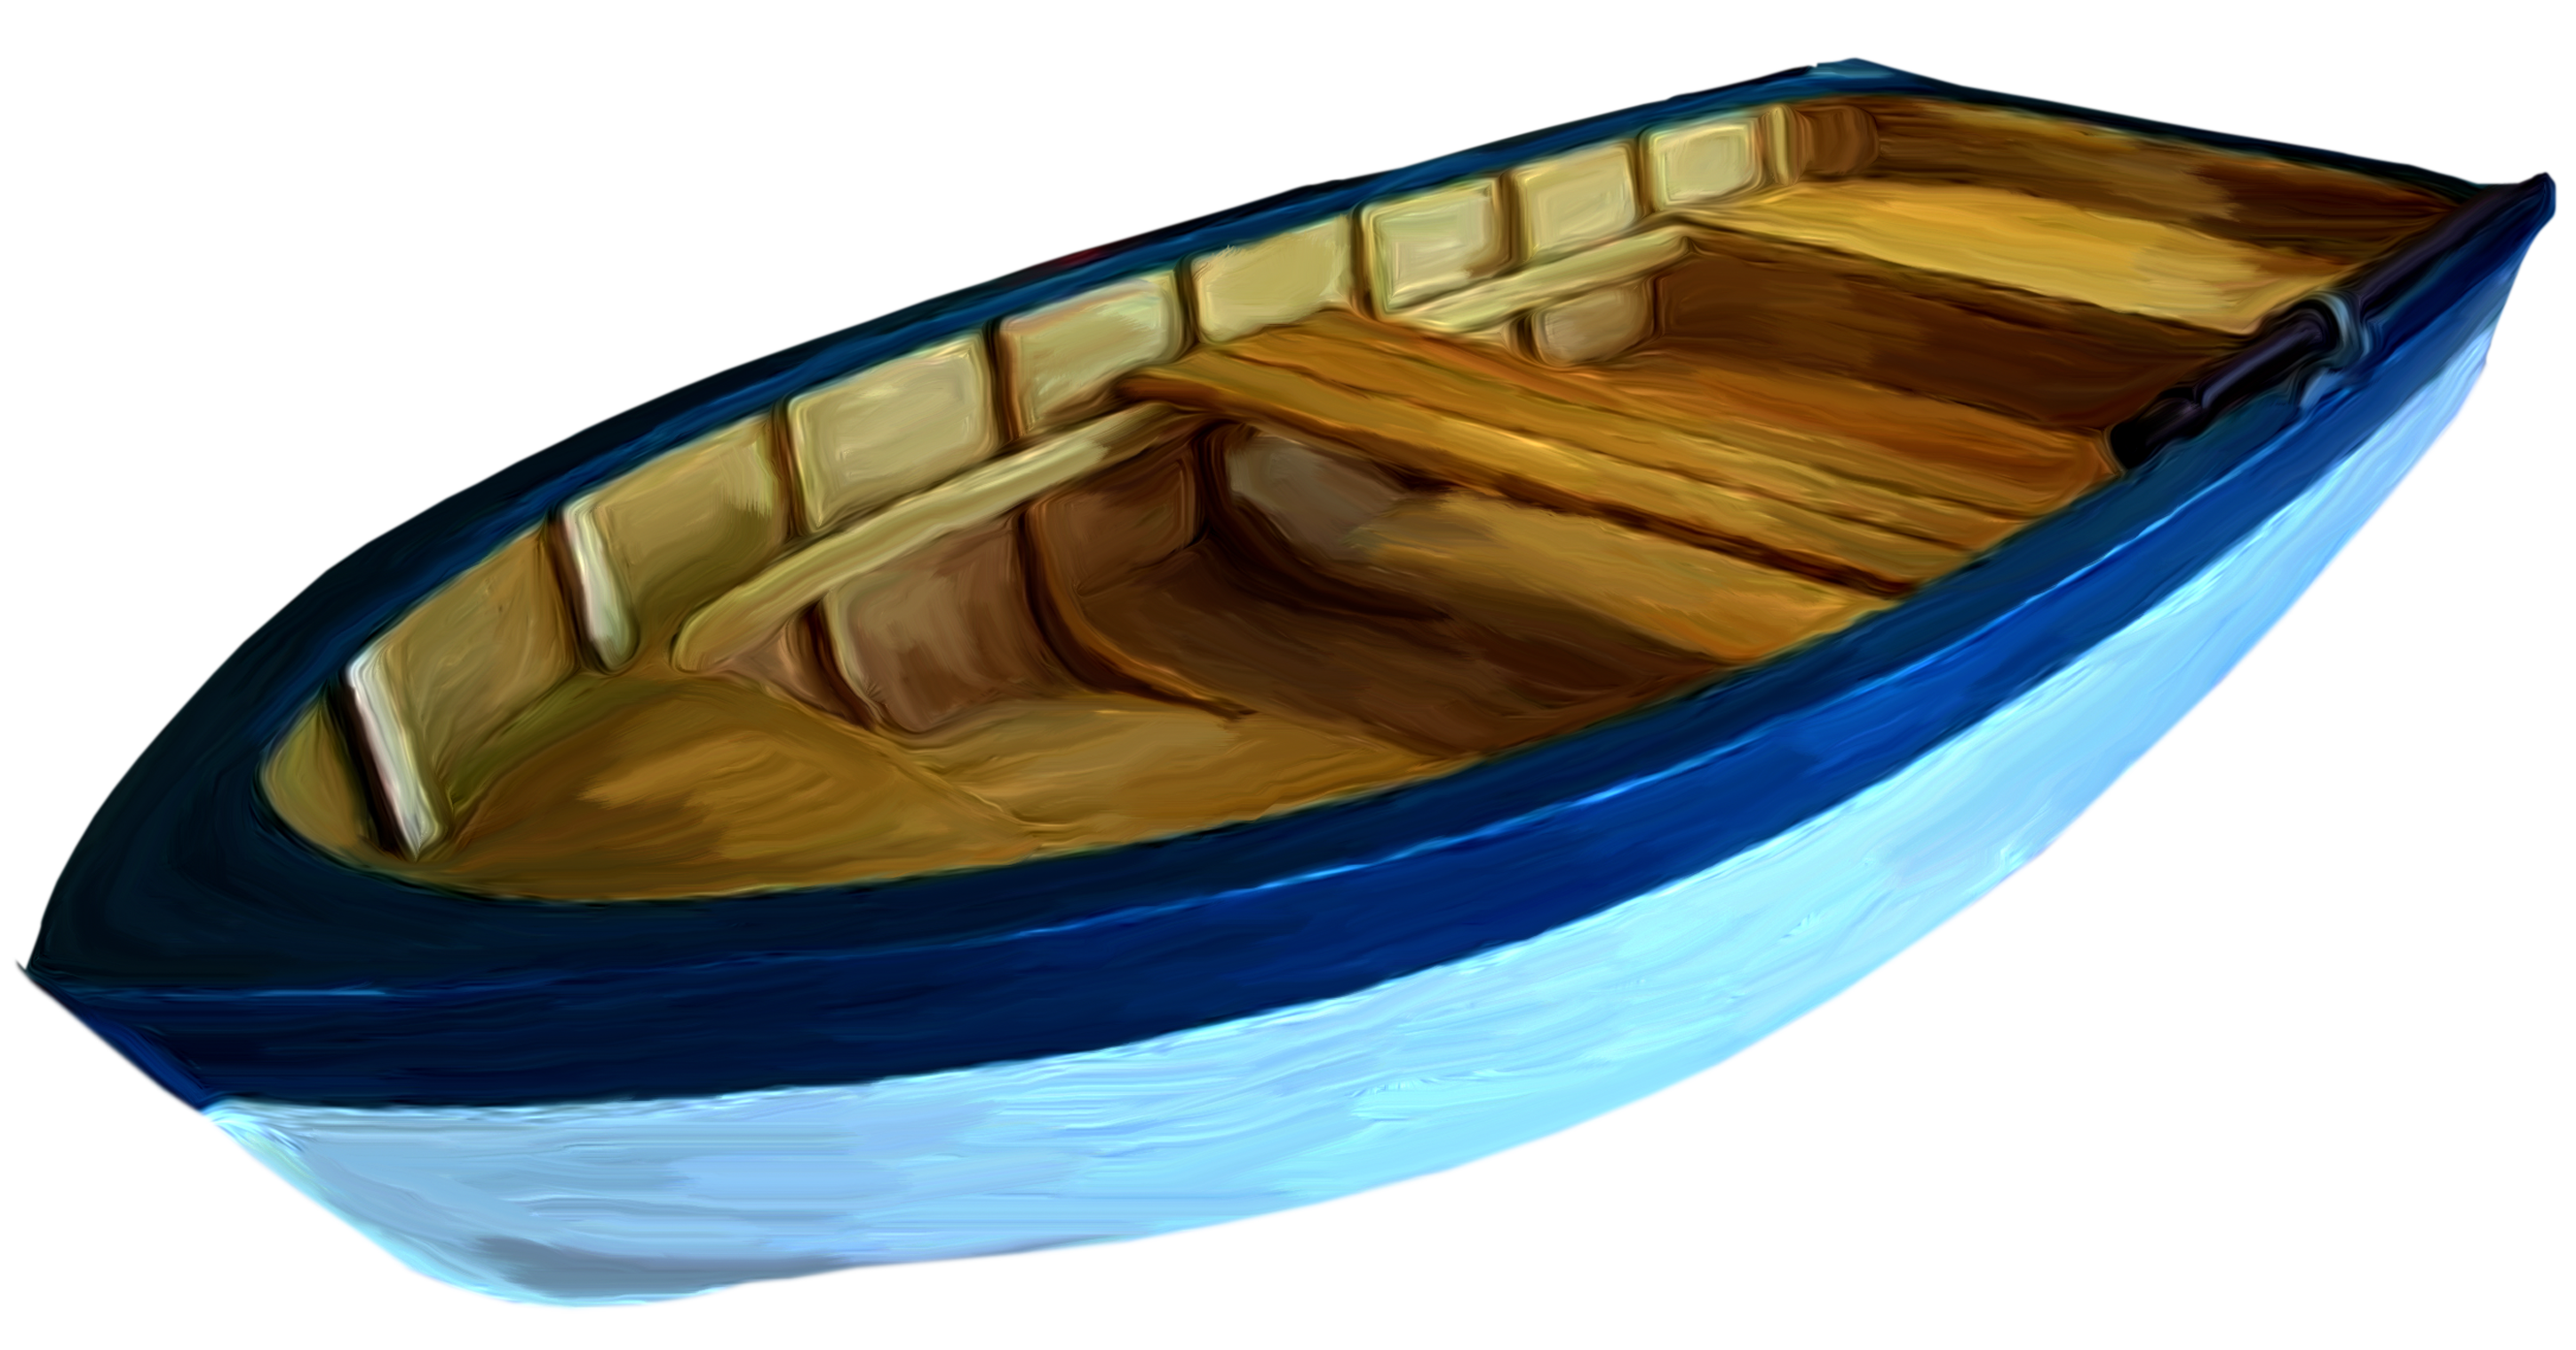 Row clipart boating. Boat transparent background x